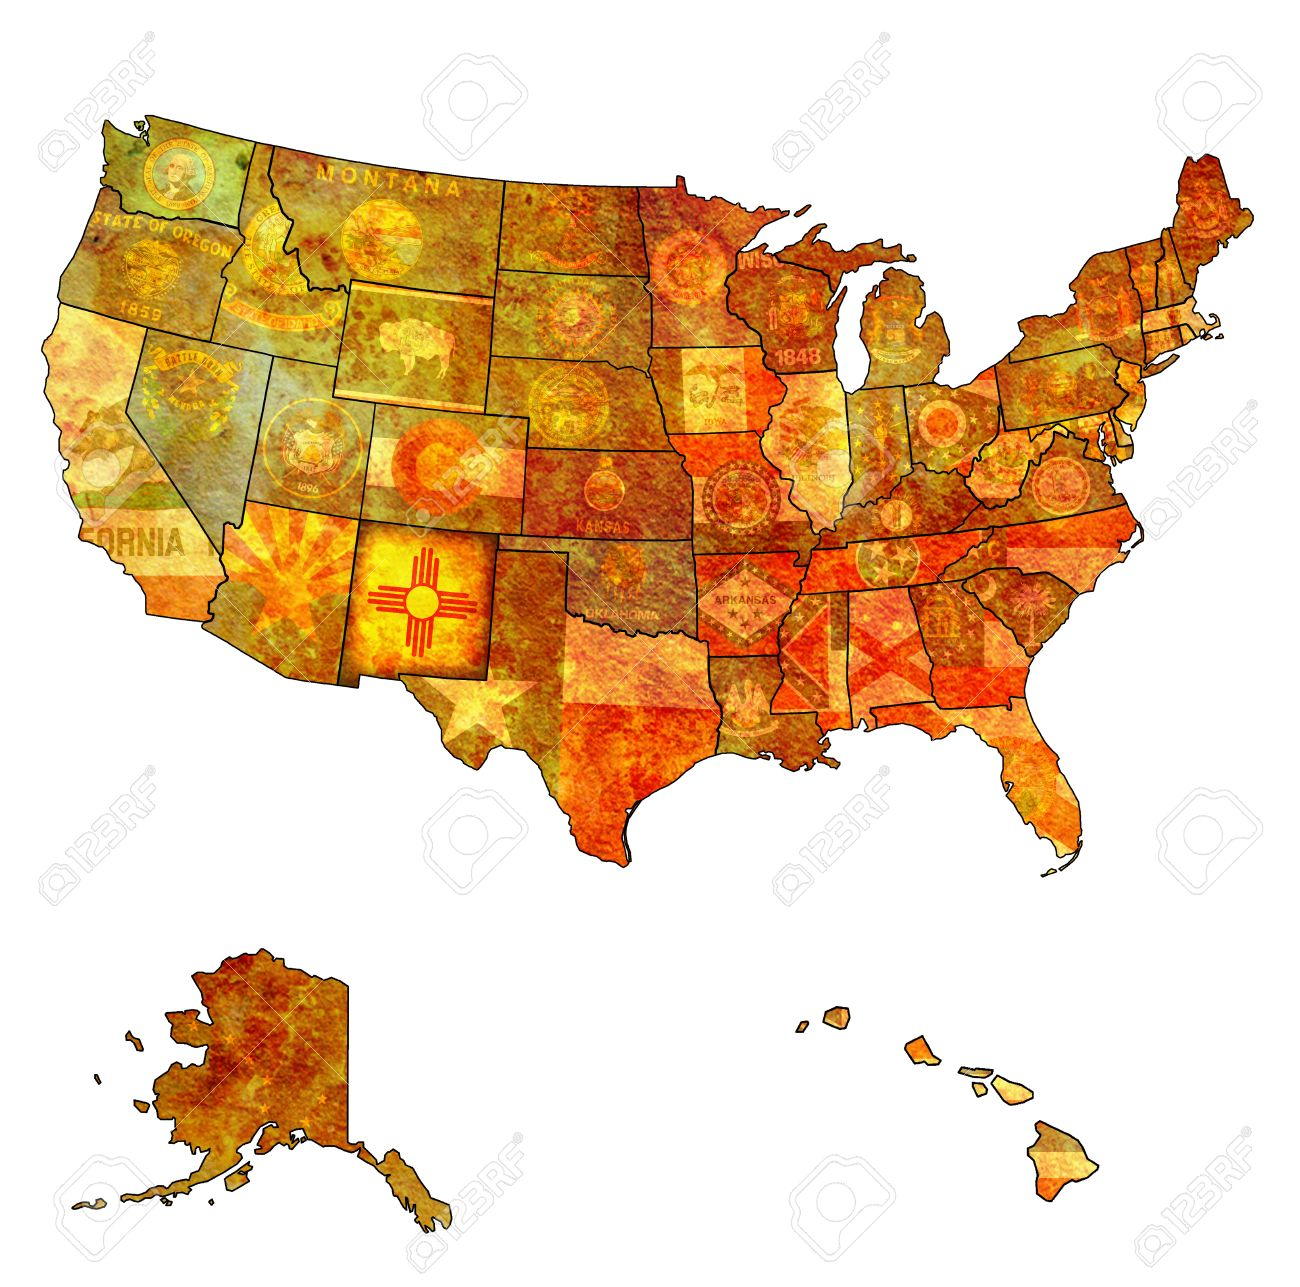 United States Map Nations Online Project FileBlank US Map Borders - Us zip codes list by state